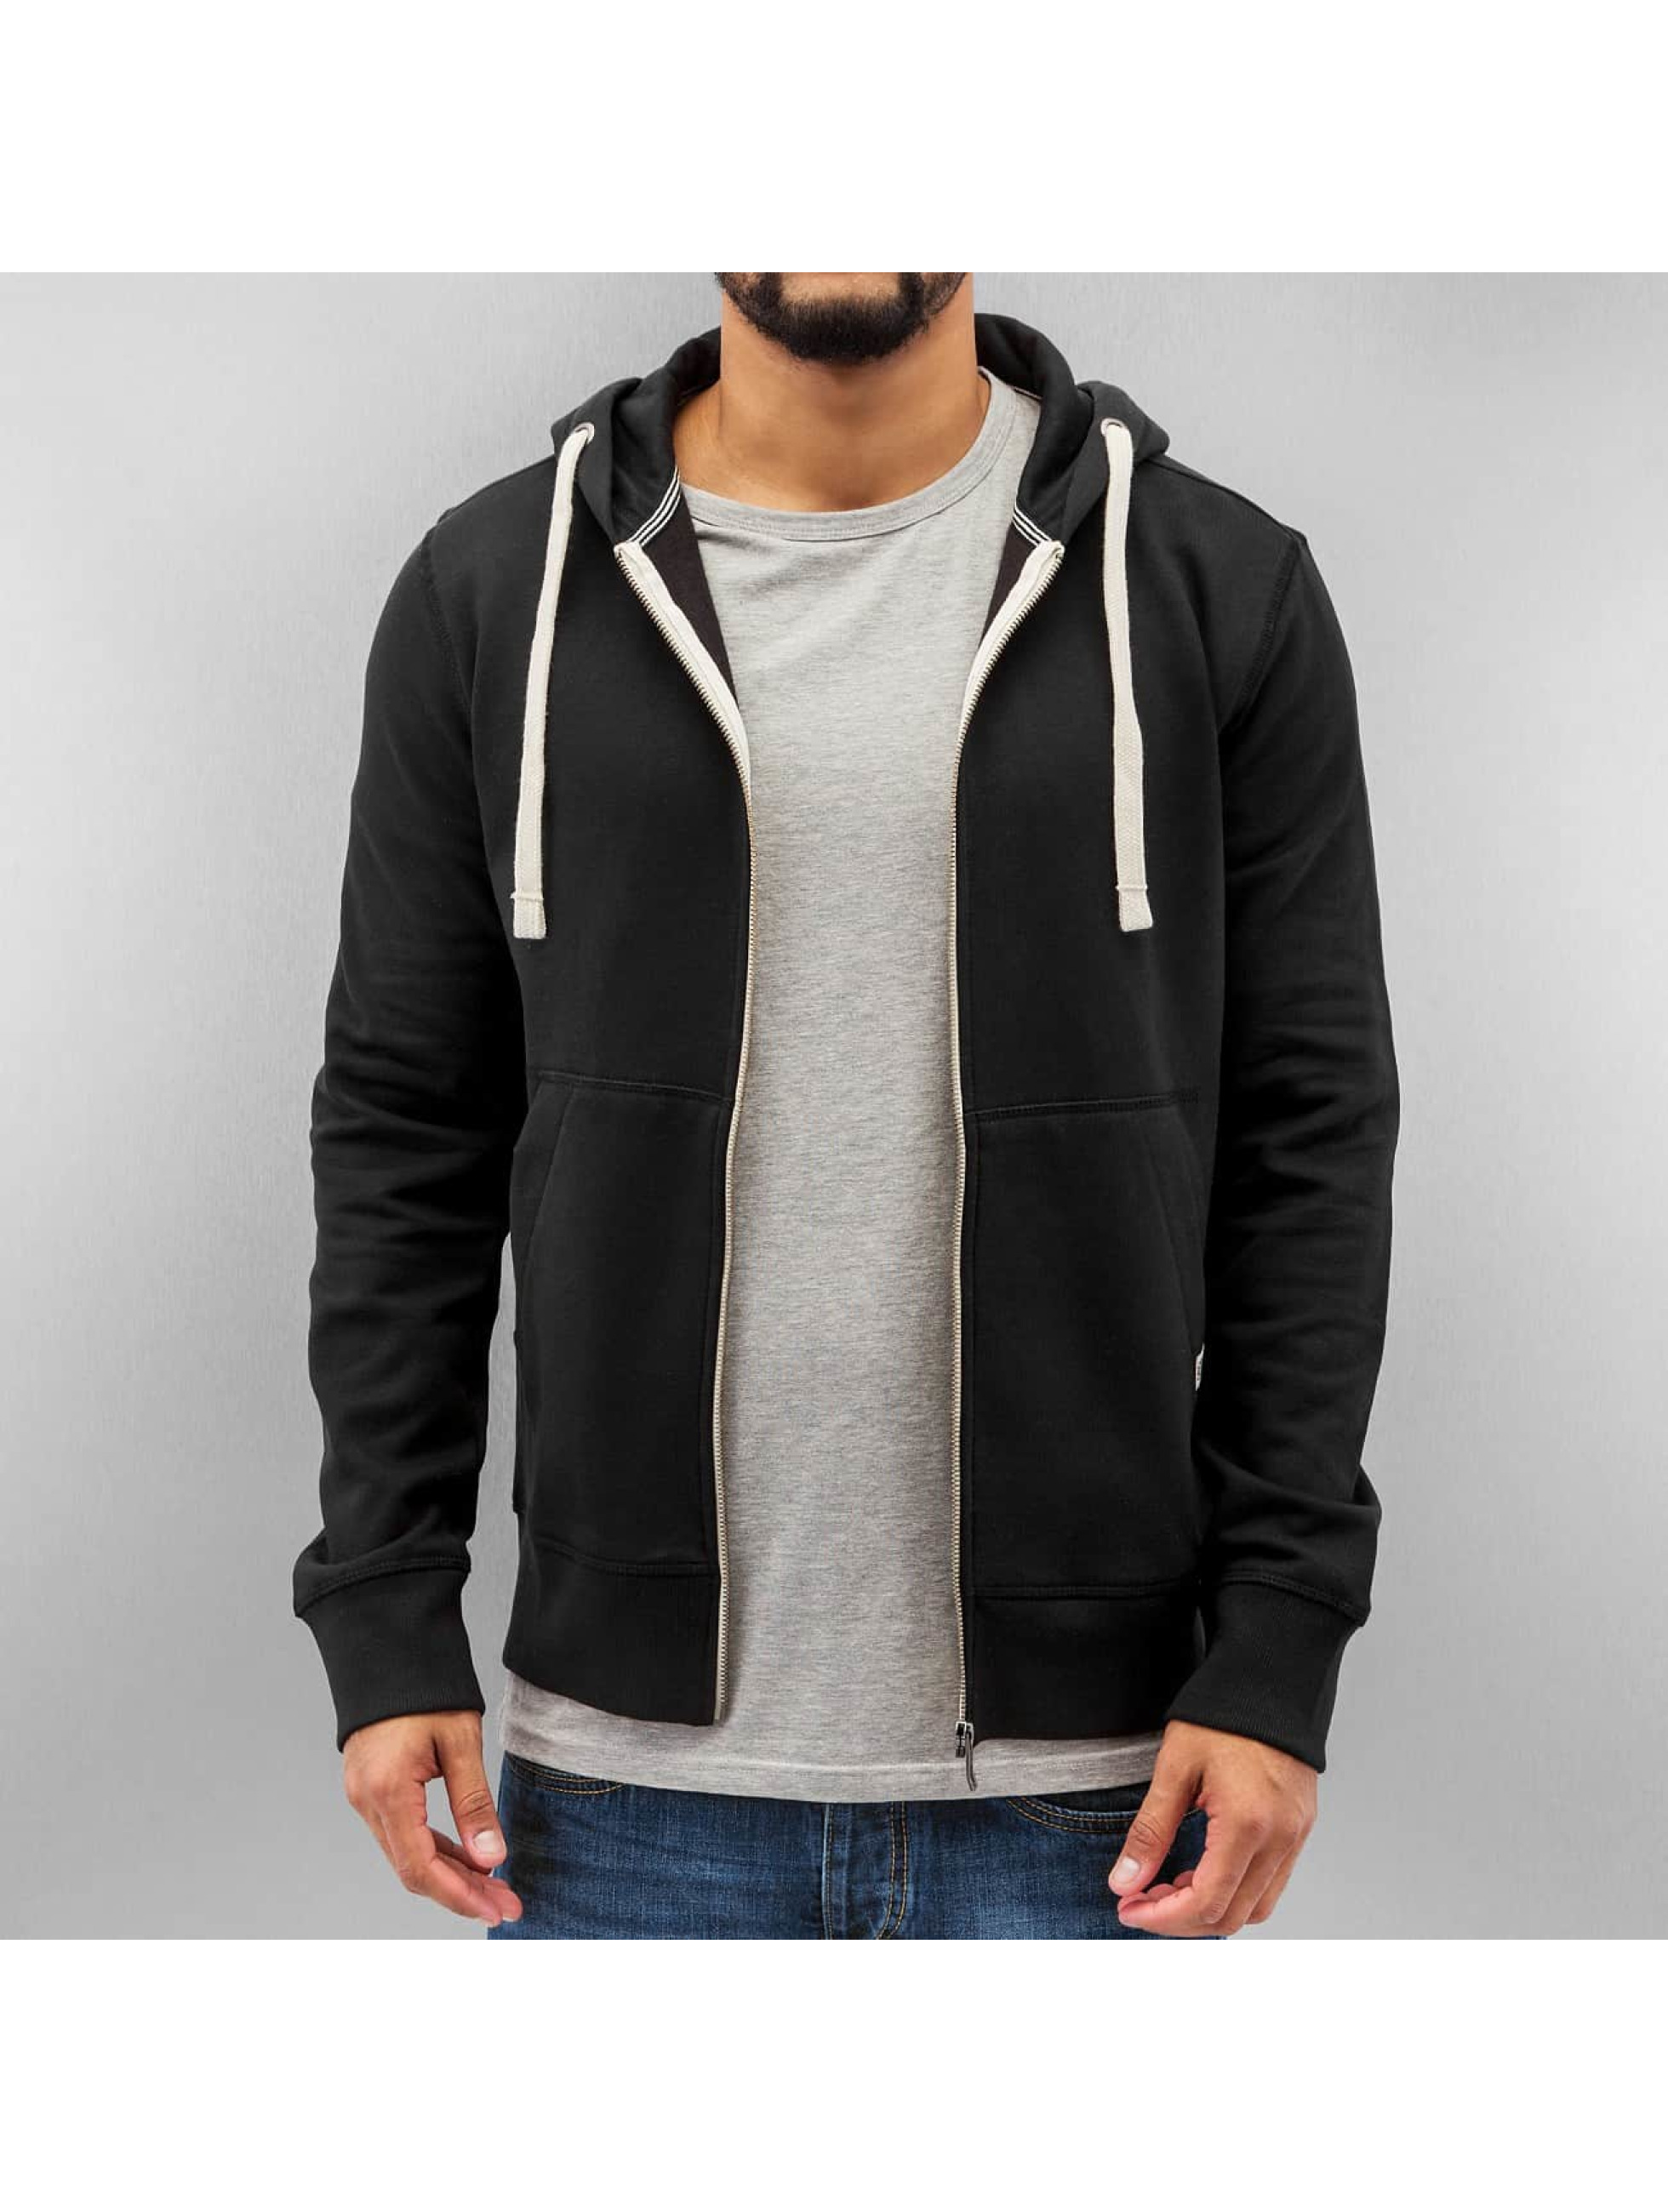 Jack & Jones Oberteil / Zip Hoodie Storm Sweat in schwarz